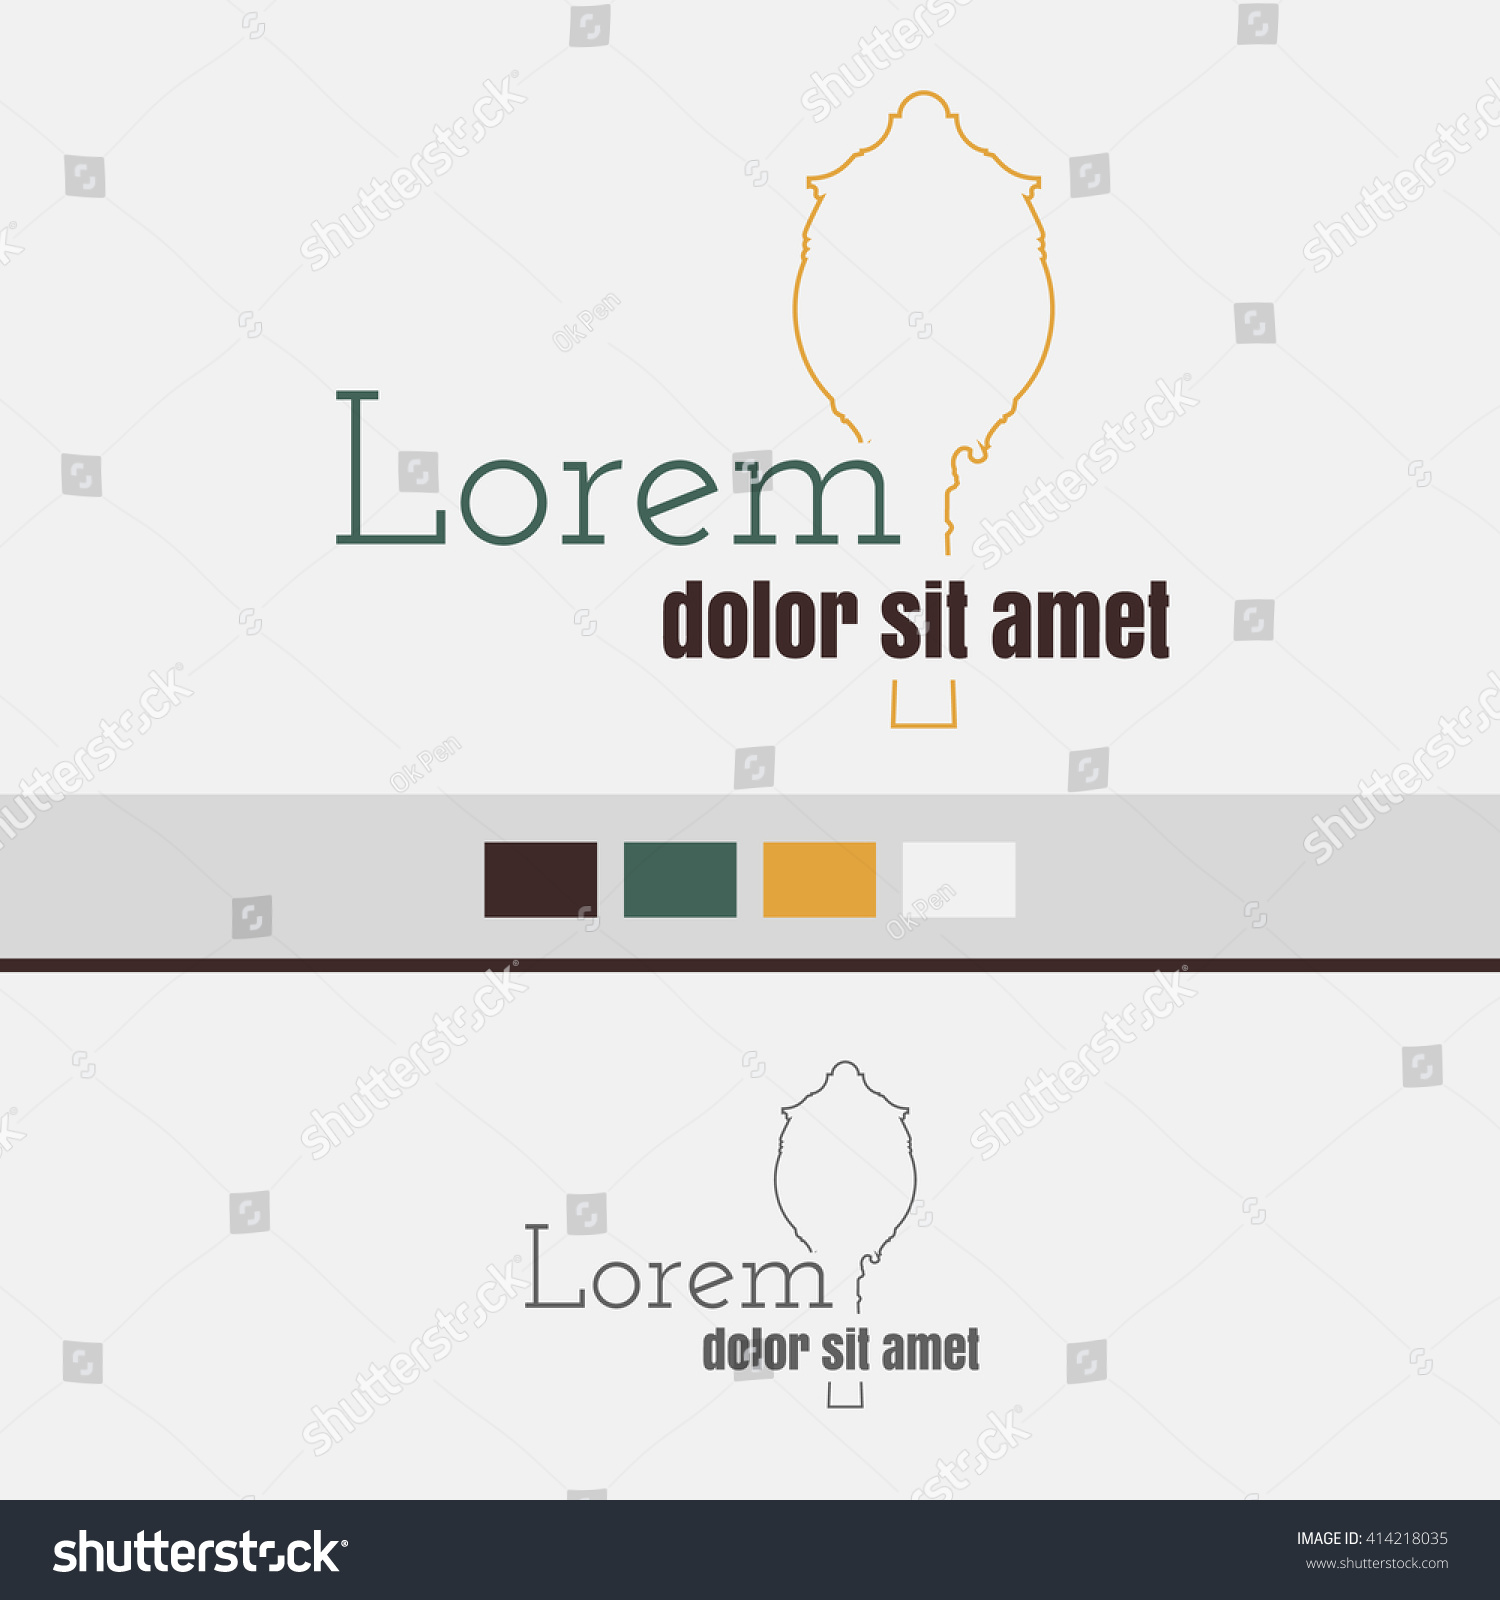 classy chair logo design. Vector logo with line street clock icon Logo Line Street Clock Icon Stock 414218035